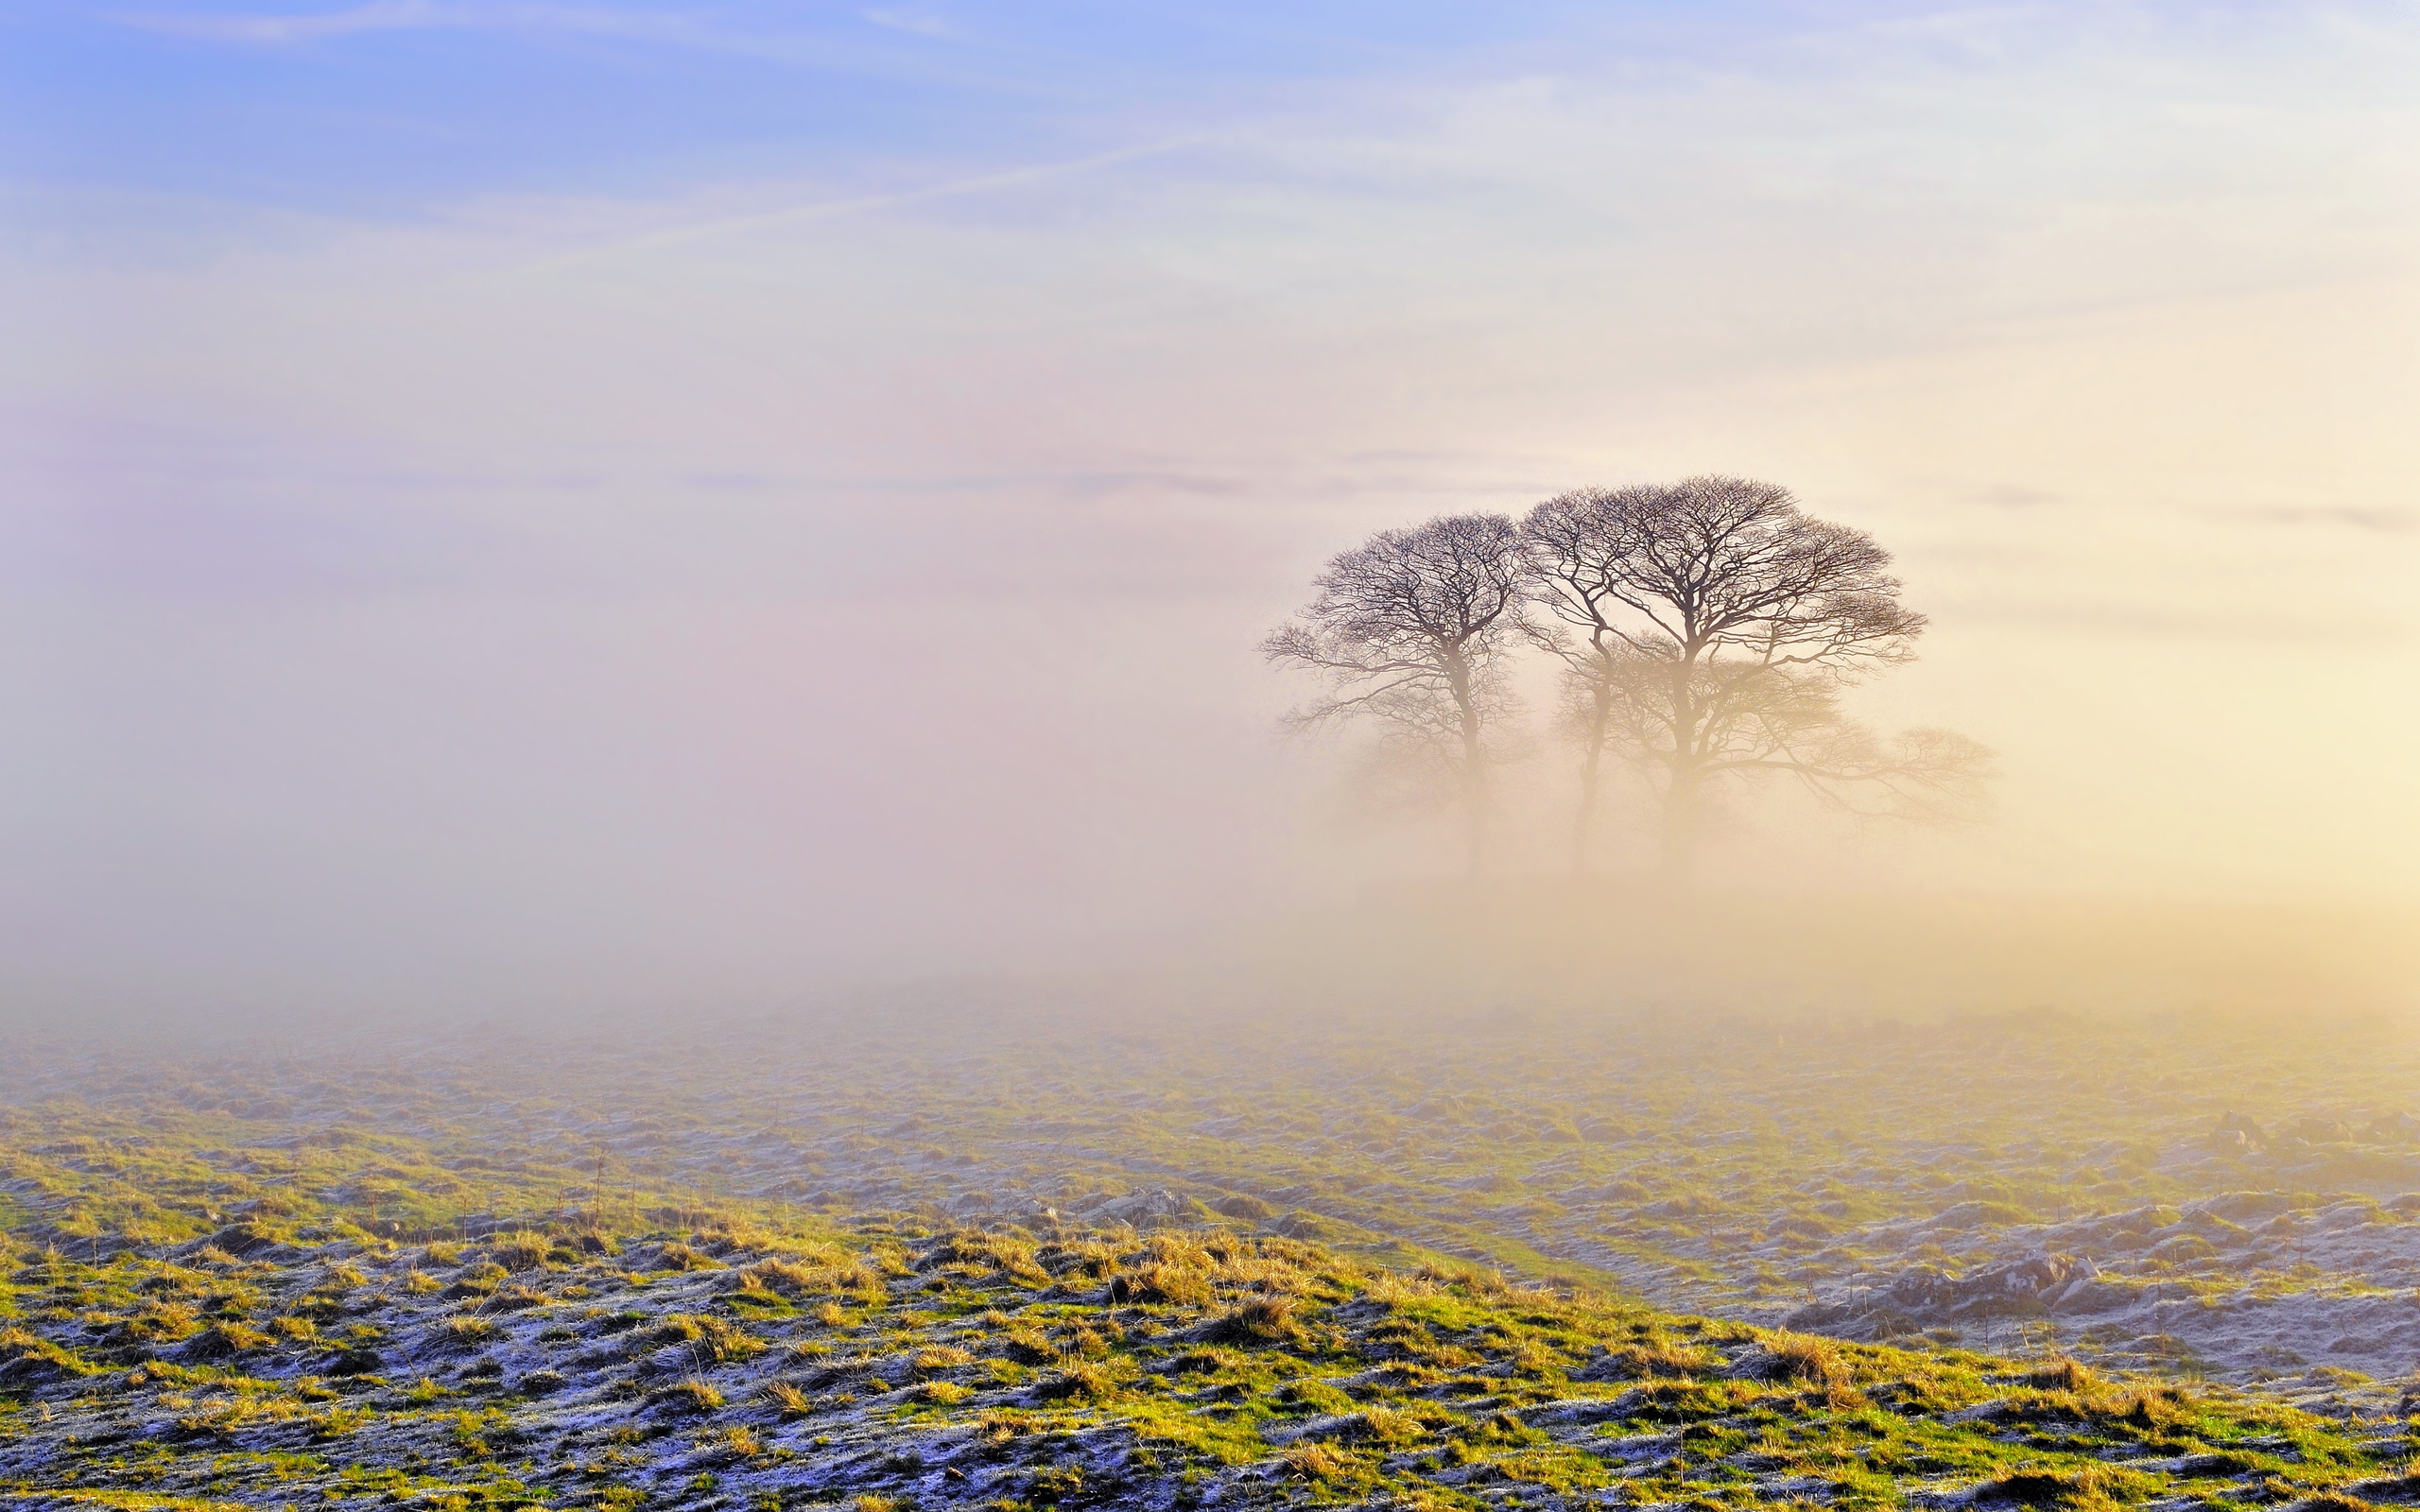 fog scenery images